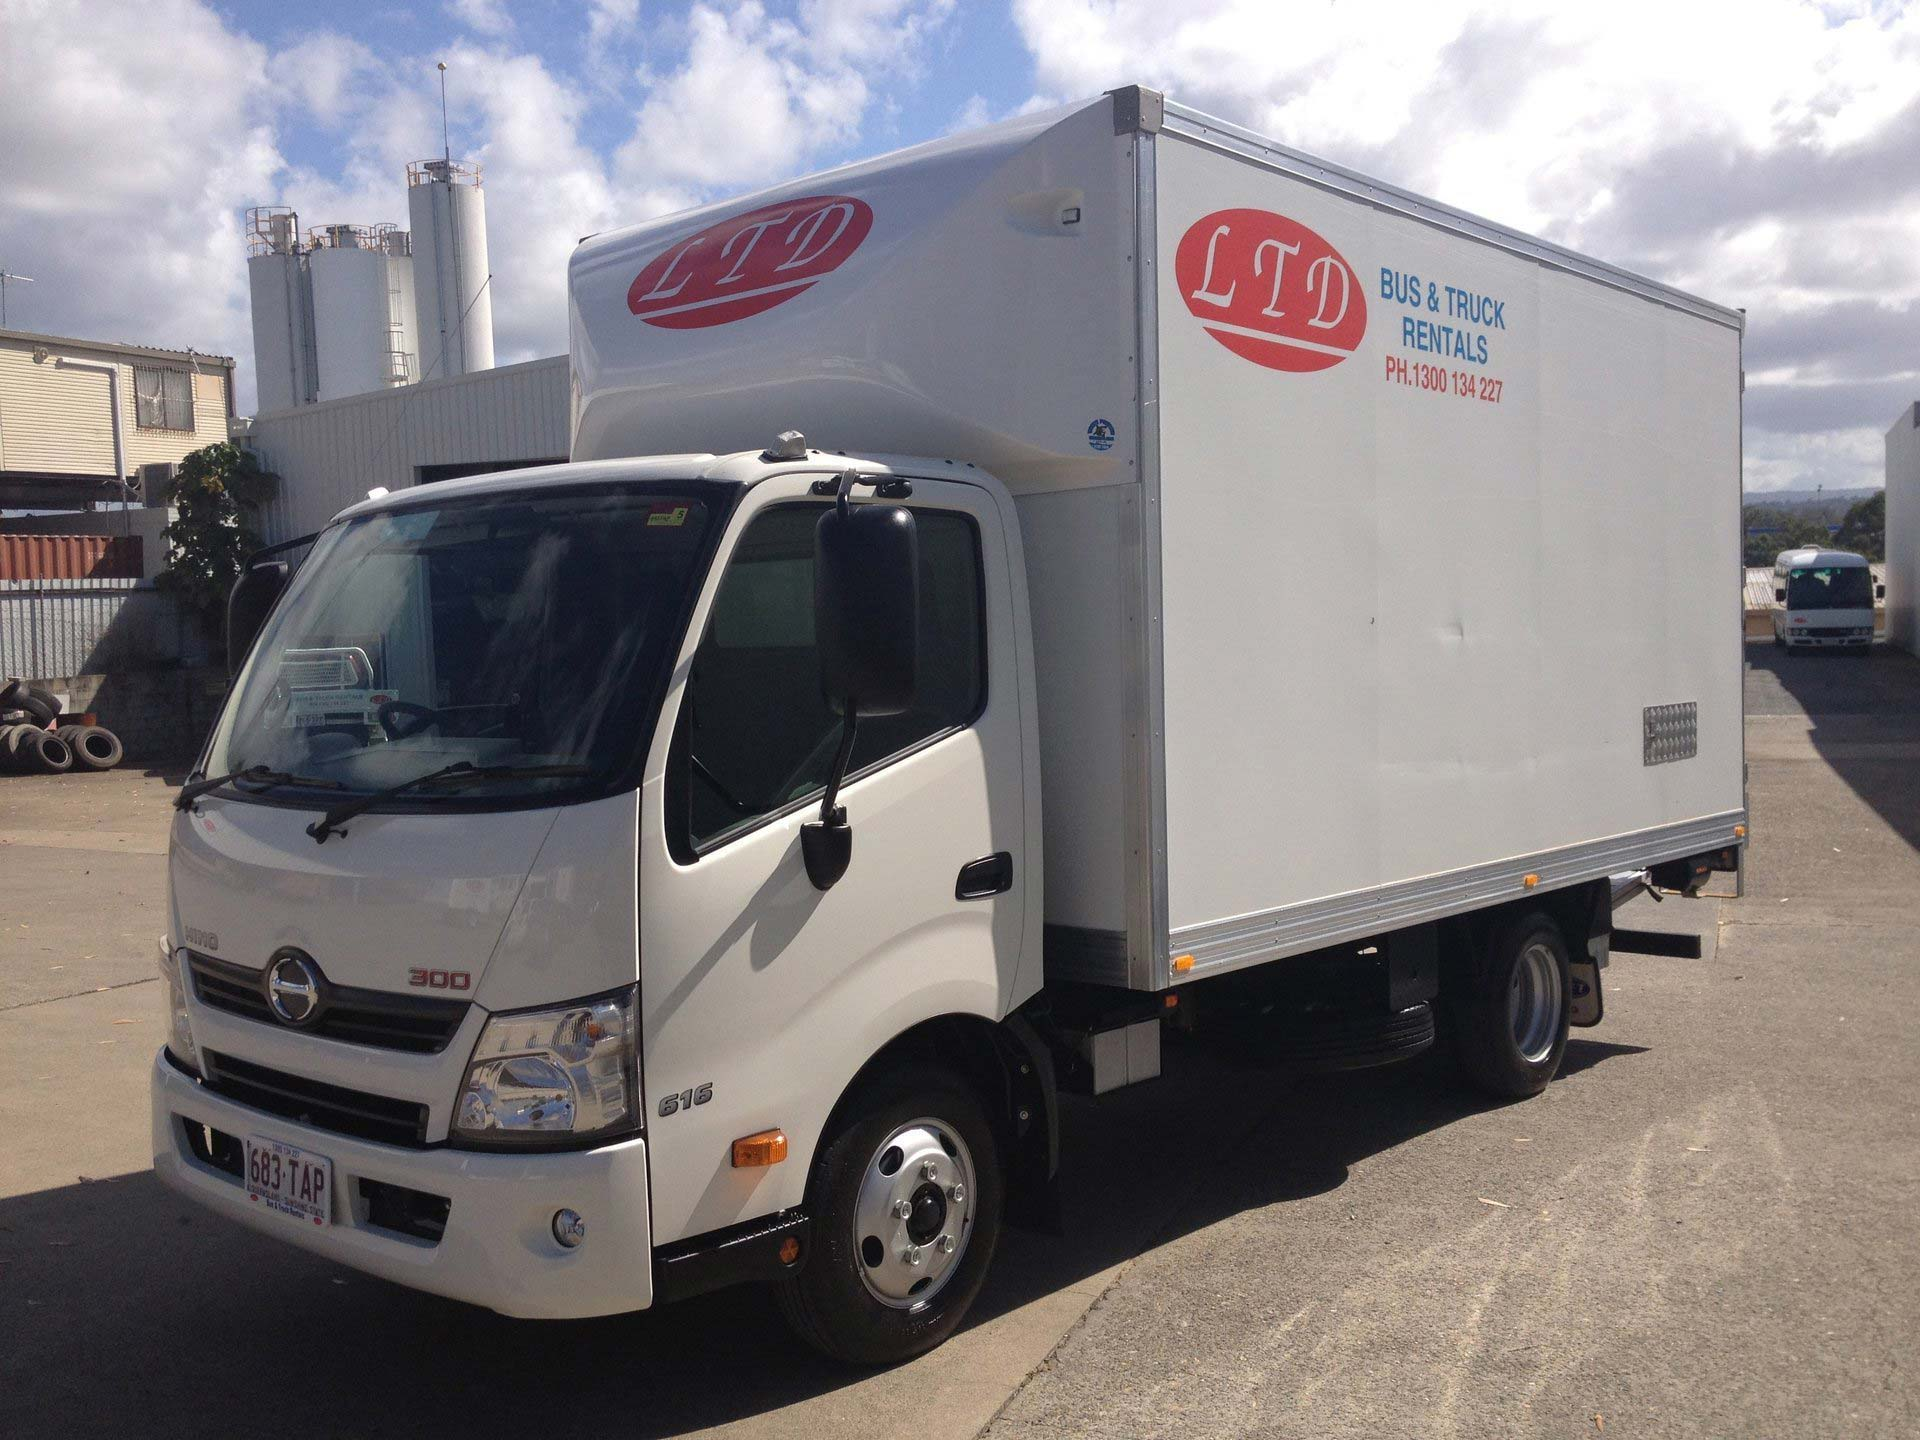 Truck for hire used by the removalist in Gold Coast